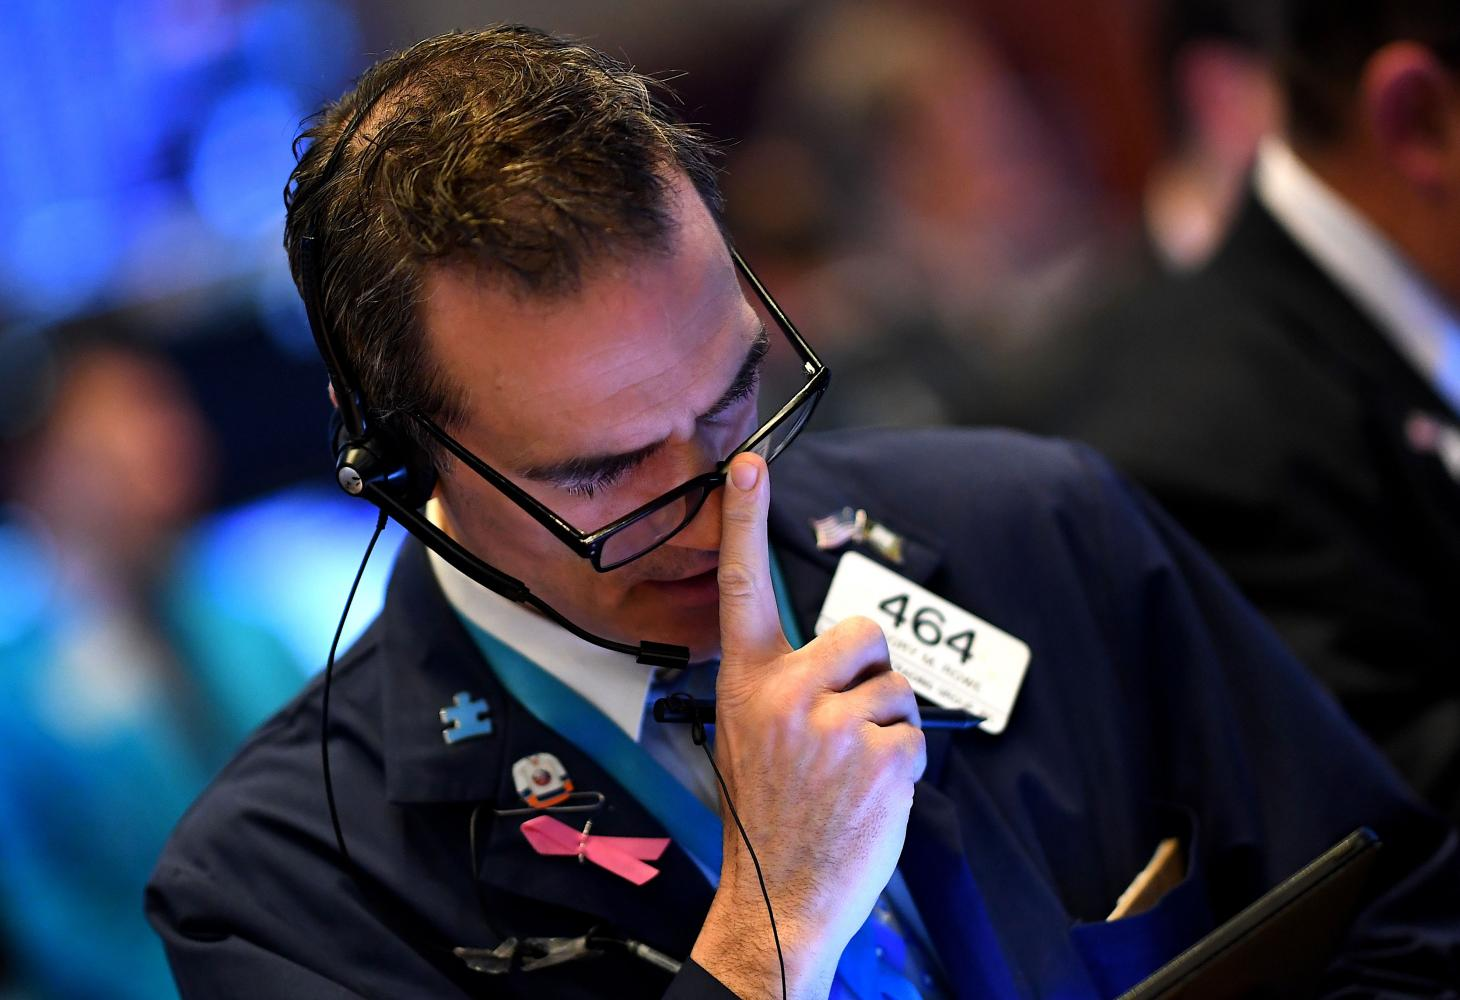 Traders work during the opening bell at the New York Stock Exchange on Monday on Wall Street in New York City. AFP